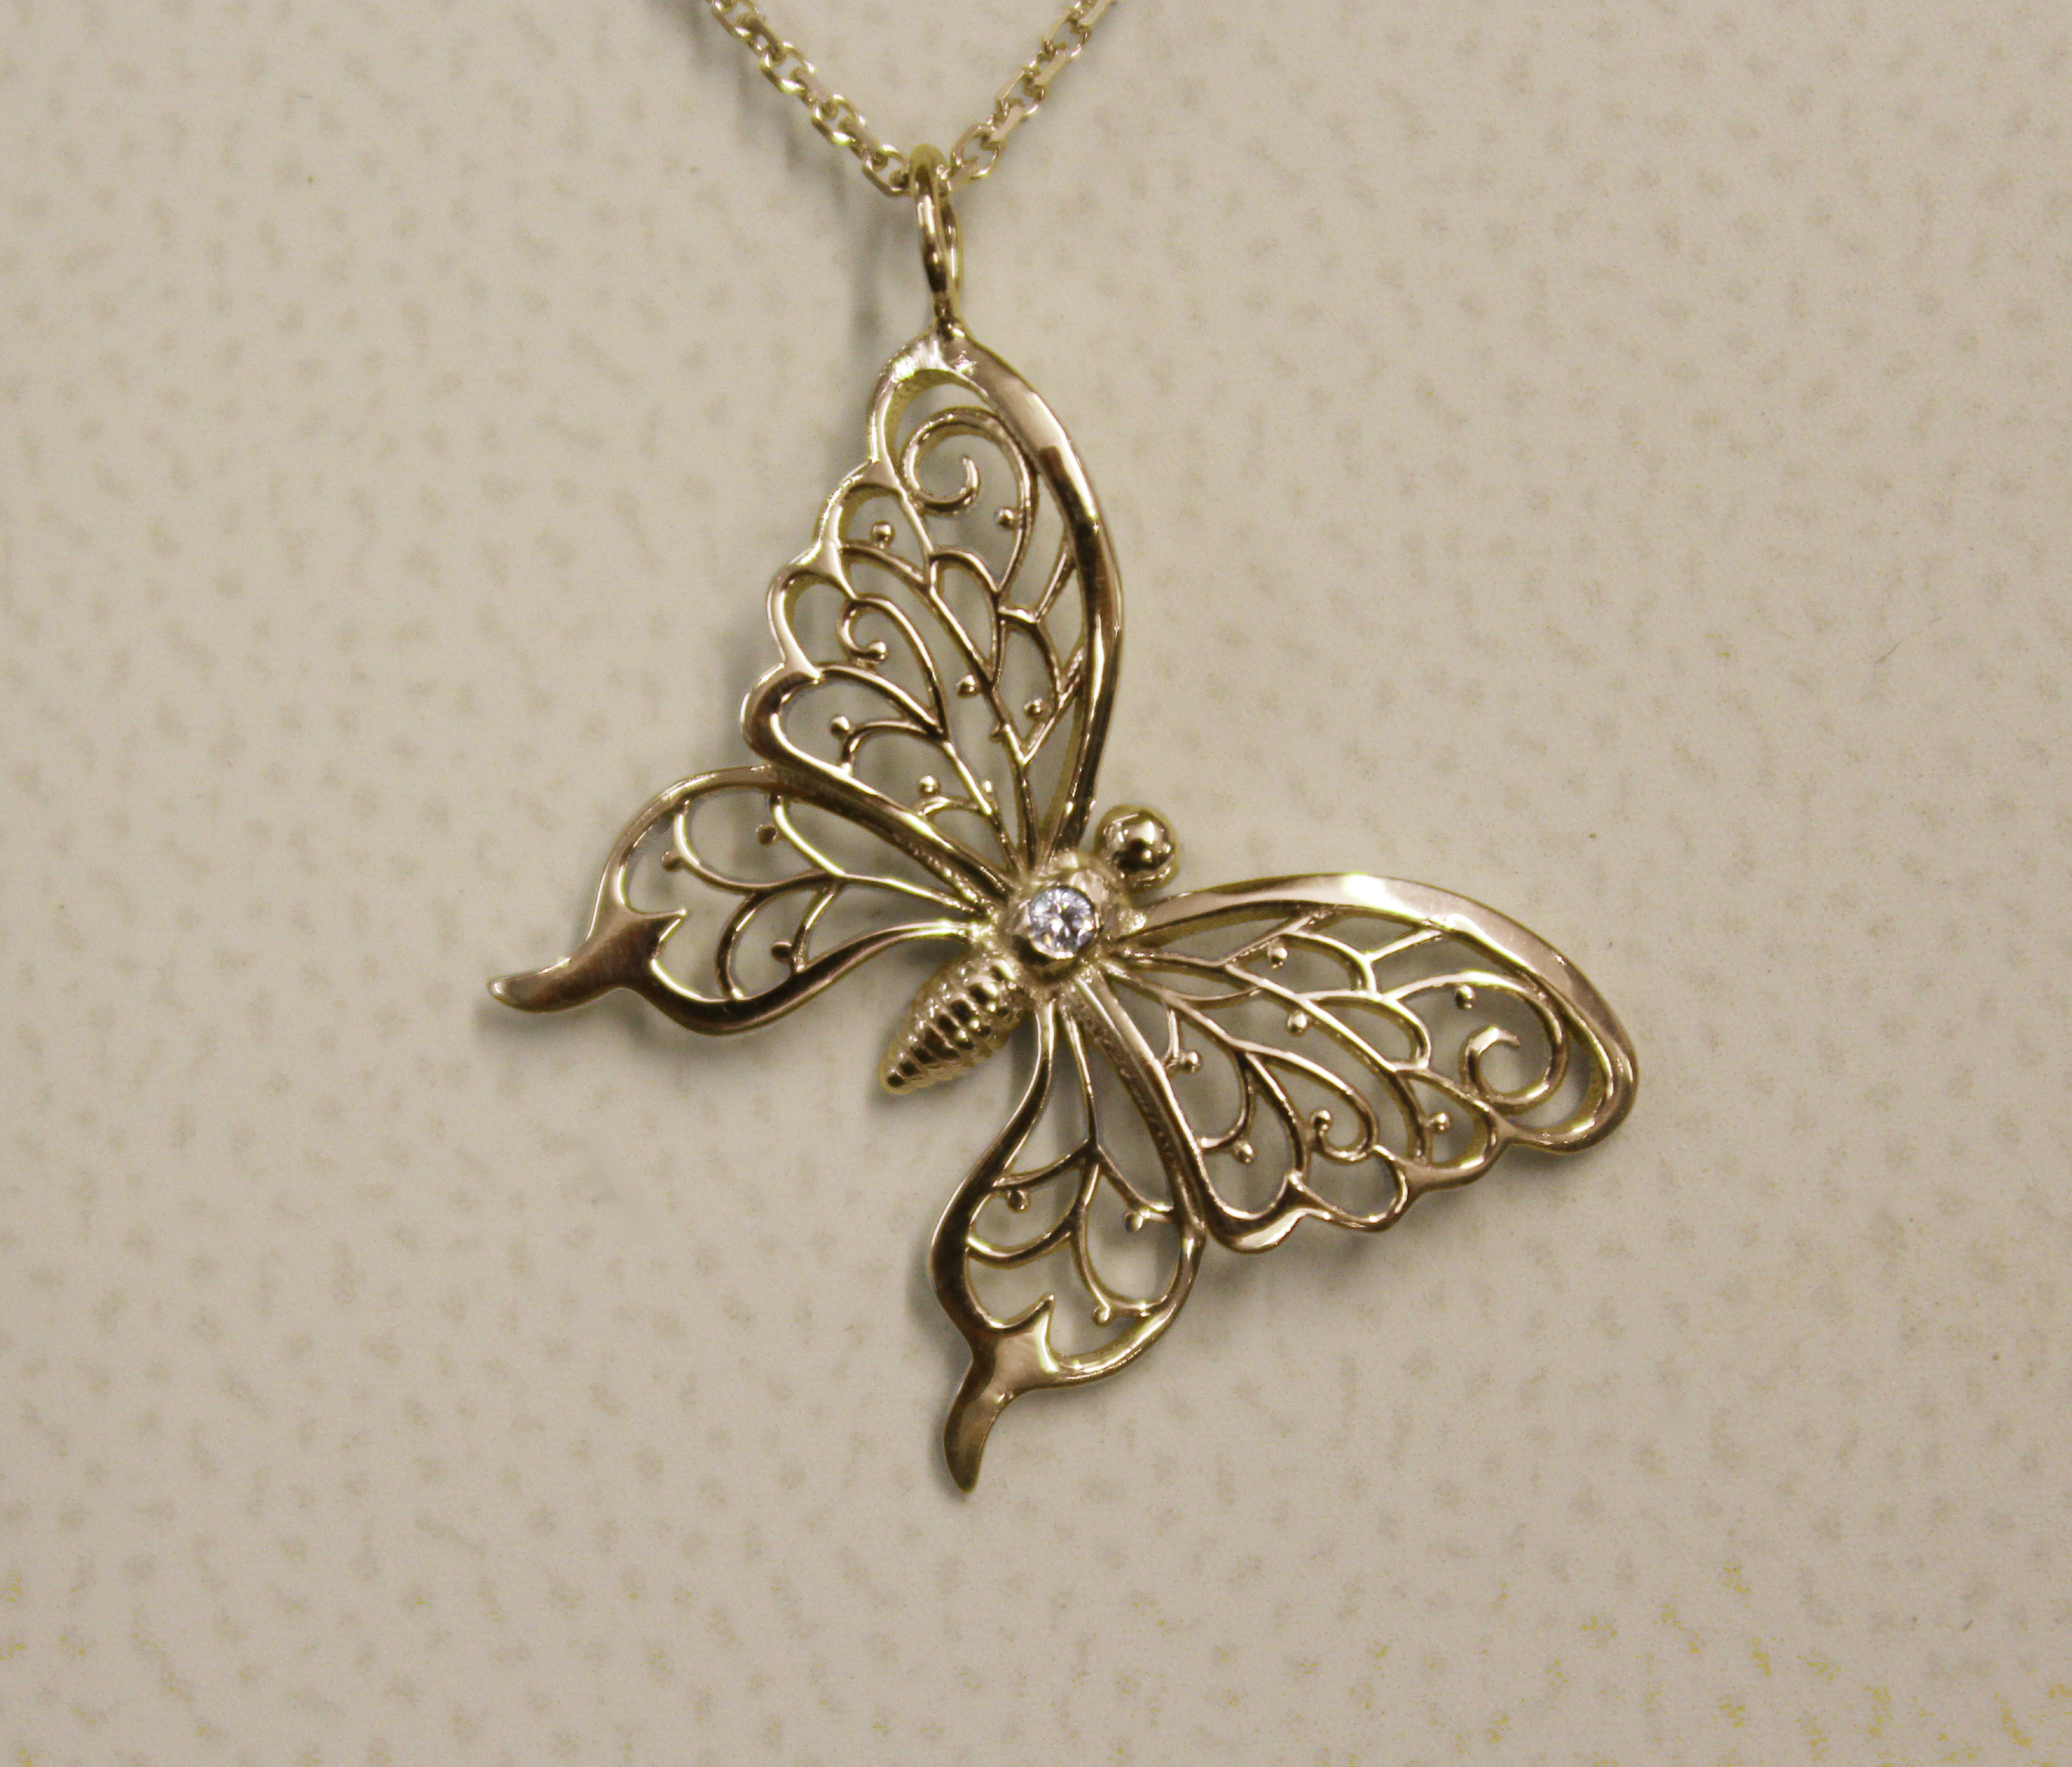 EB Healing Wings Butterfly Diamond Necklace